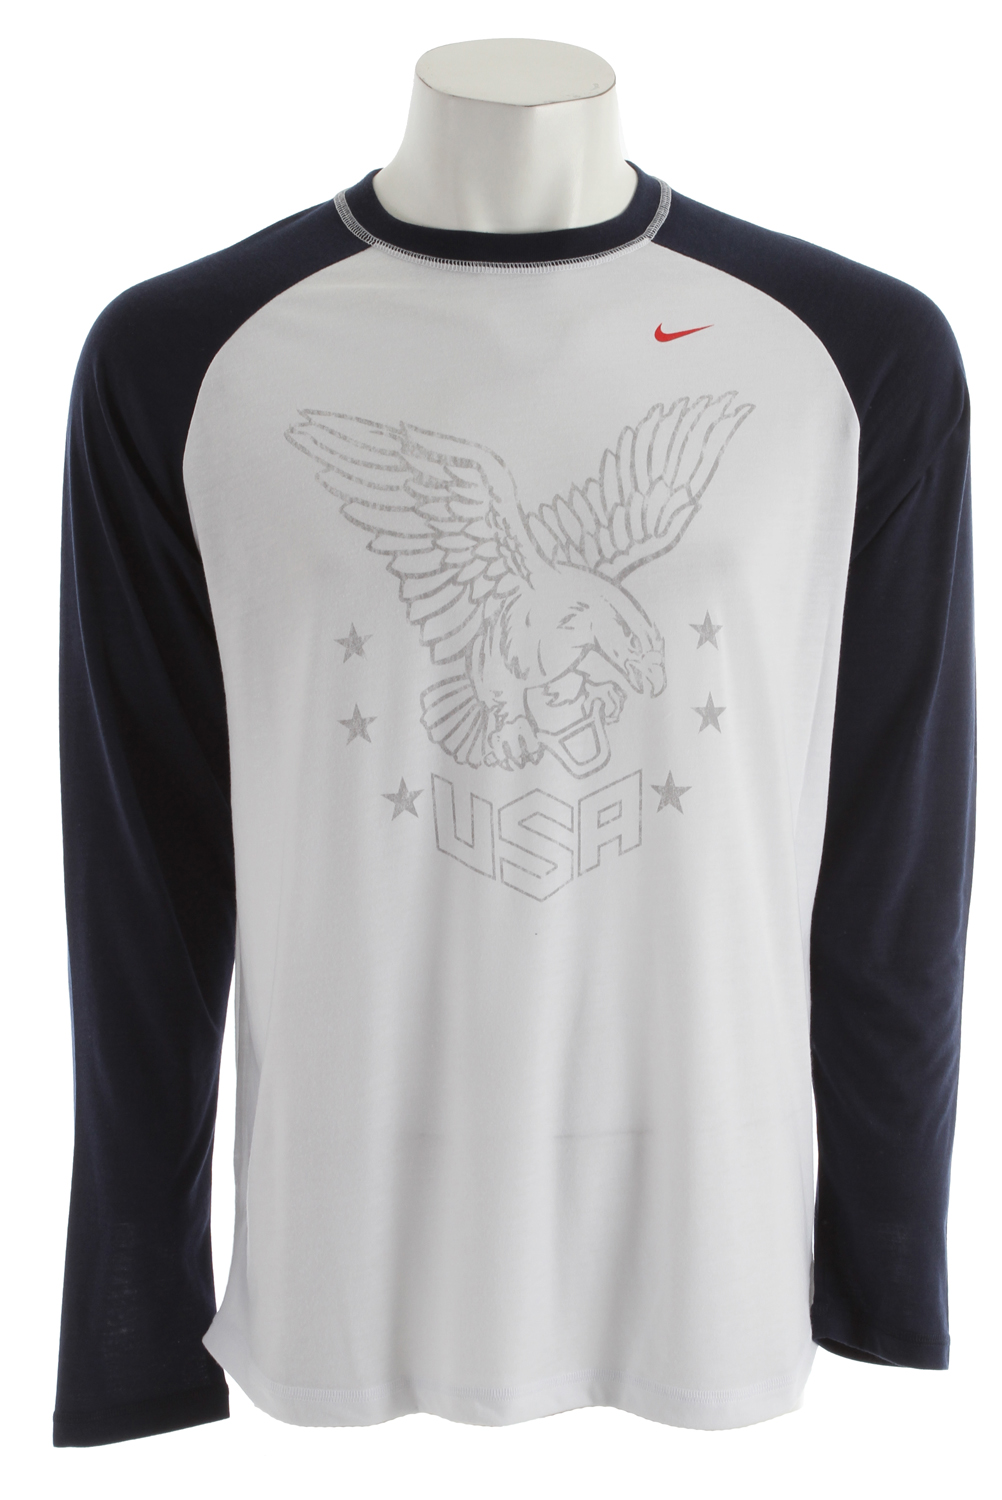 Skateboard Key Features of the Nike Olympics Dri-Fit Blend T-Shirt: Dri-FIT fabric to wick sweat away and help keep you dry and comfortable Fitted to move with you and stay out of the way, all day Seams designed to reduce distraction and bulk - $35.95